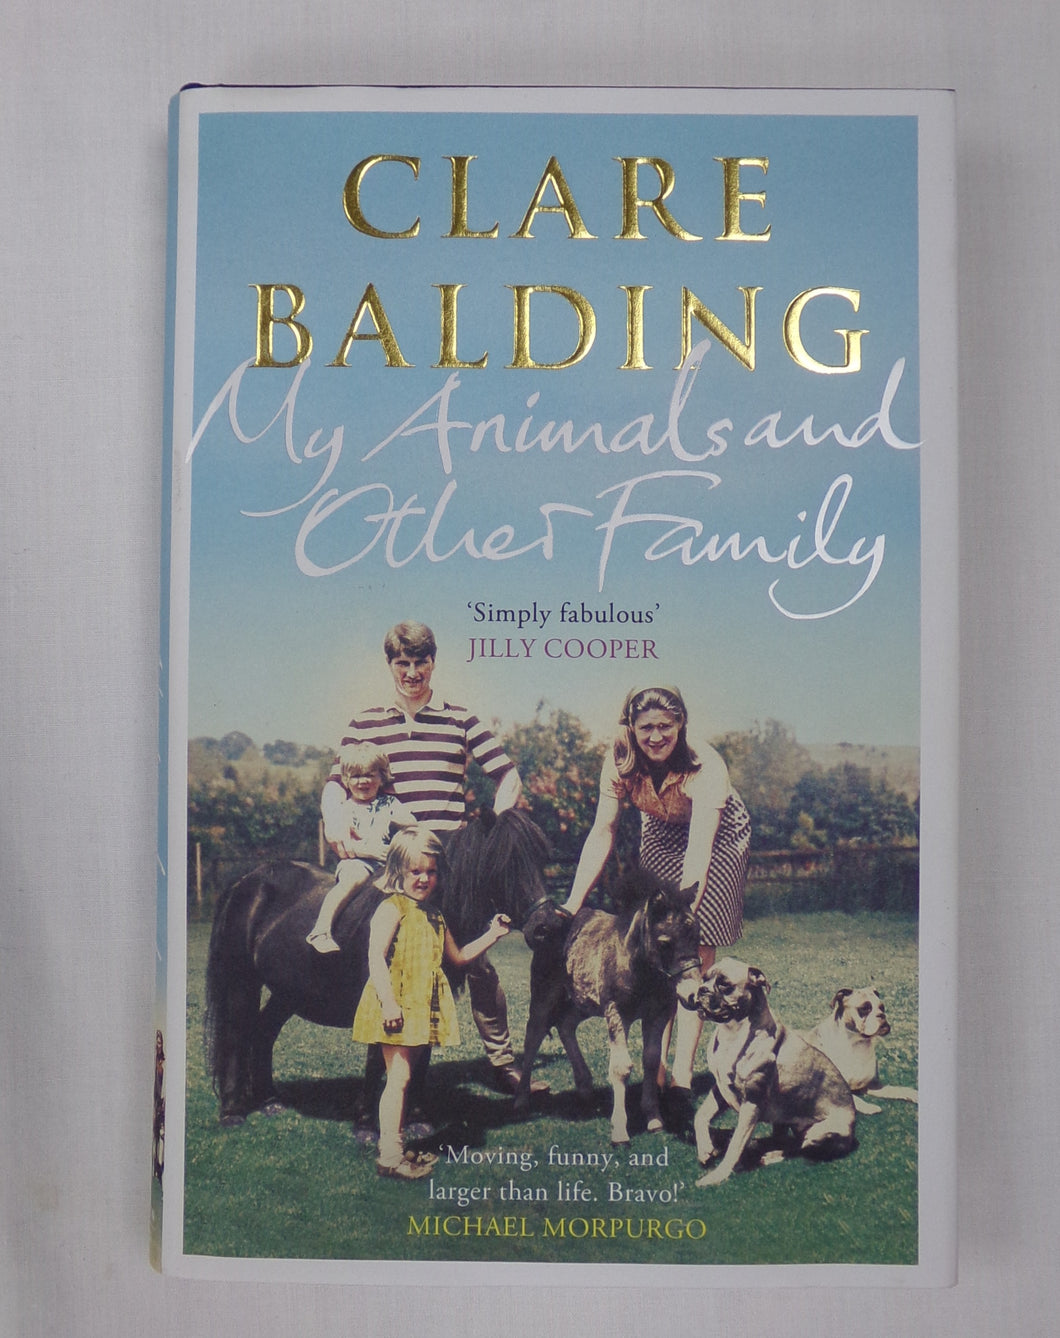 Clare Balding grew up in a rather unusual household. Her father a champion trainer, she shared her life with more than 100 thoroughbred racehorses, mares, foals and ponies, as well as an ever-present pack of boxers and lurchers. As a toddler she would happily ride the legendary Mill Reef and take breakfast with the Queen.  She and her younger brother came very low down the pecking order. Left to their own devices, they had to learn life's toughest lessons through the animals, and through their adventures in